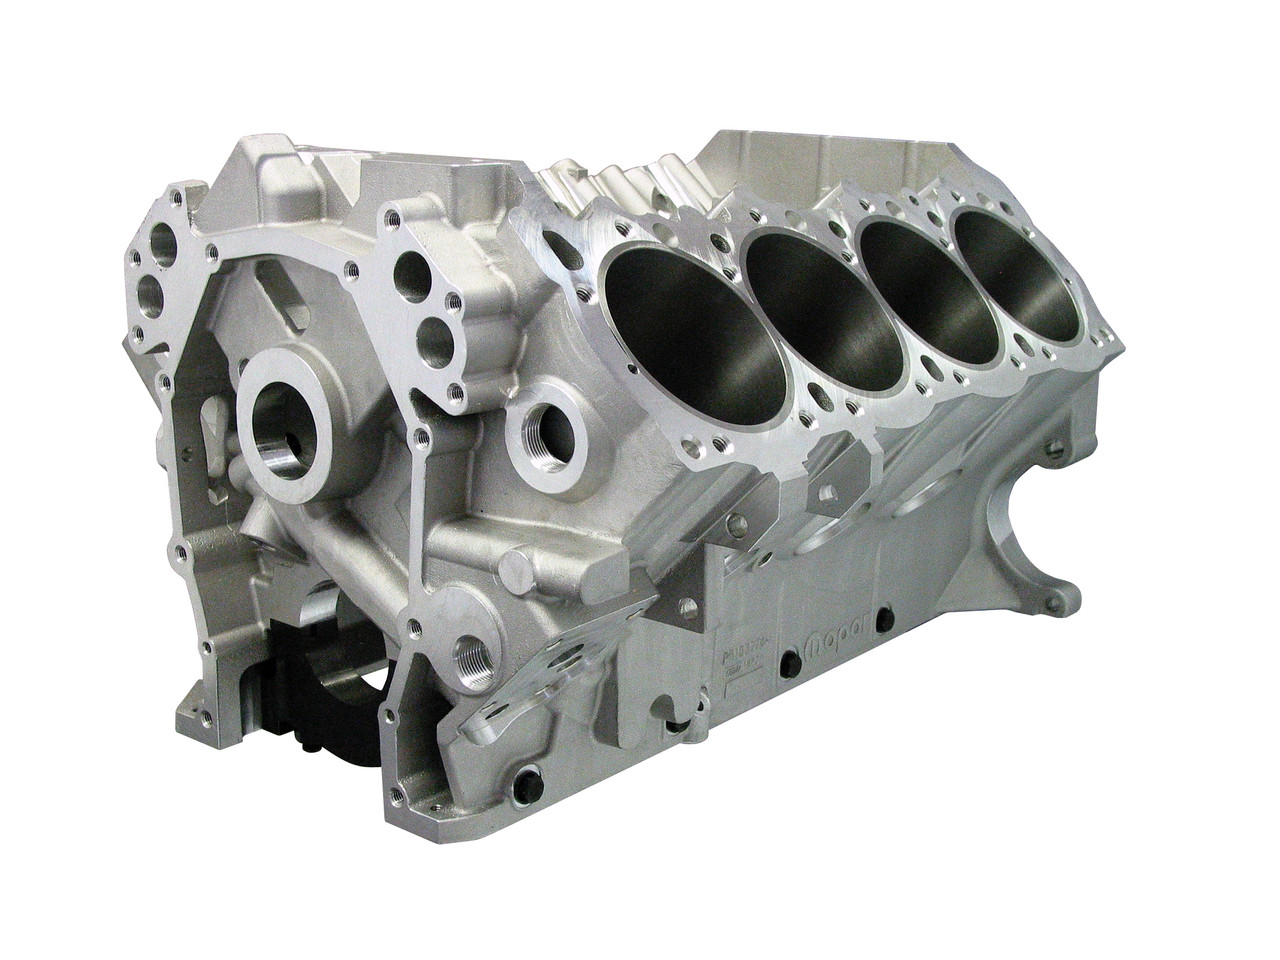 Bill Mitchell Products BMP 088550 - Aluminum Engine Block Wedge Block  10 720 Deck, 4 240 Bore, Billet Caps (CLICK HERE/MORE INFO)